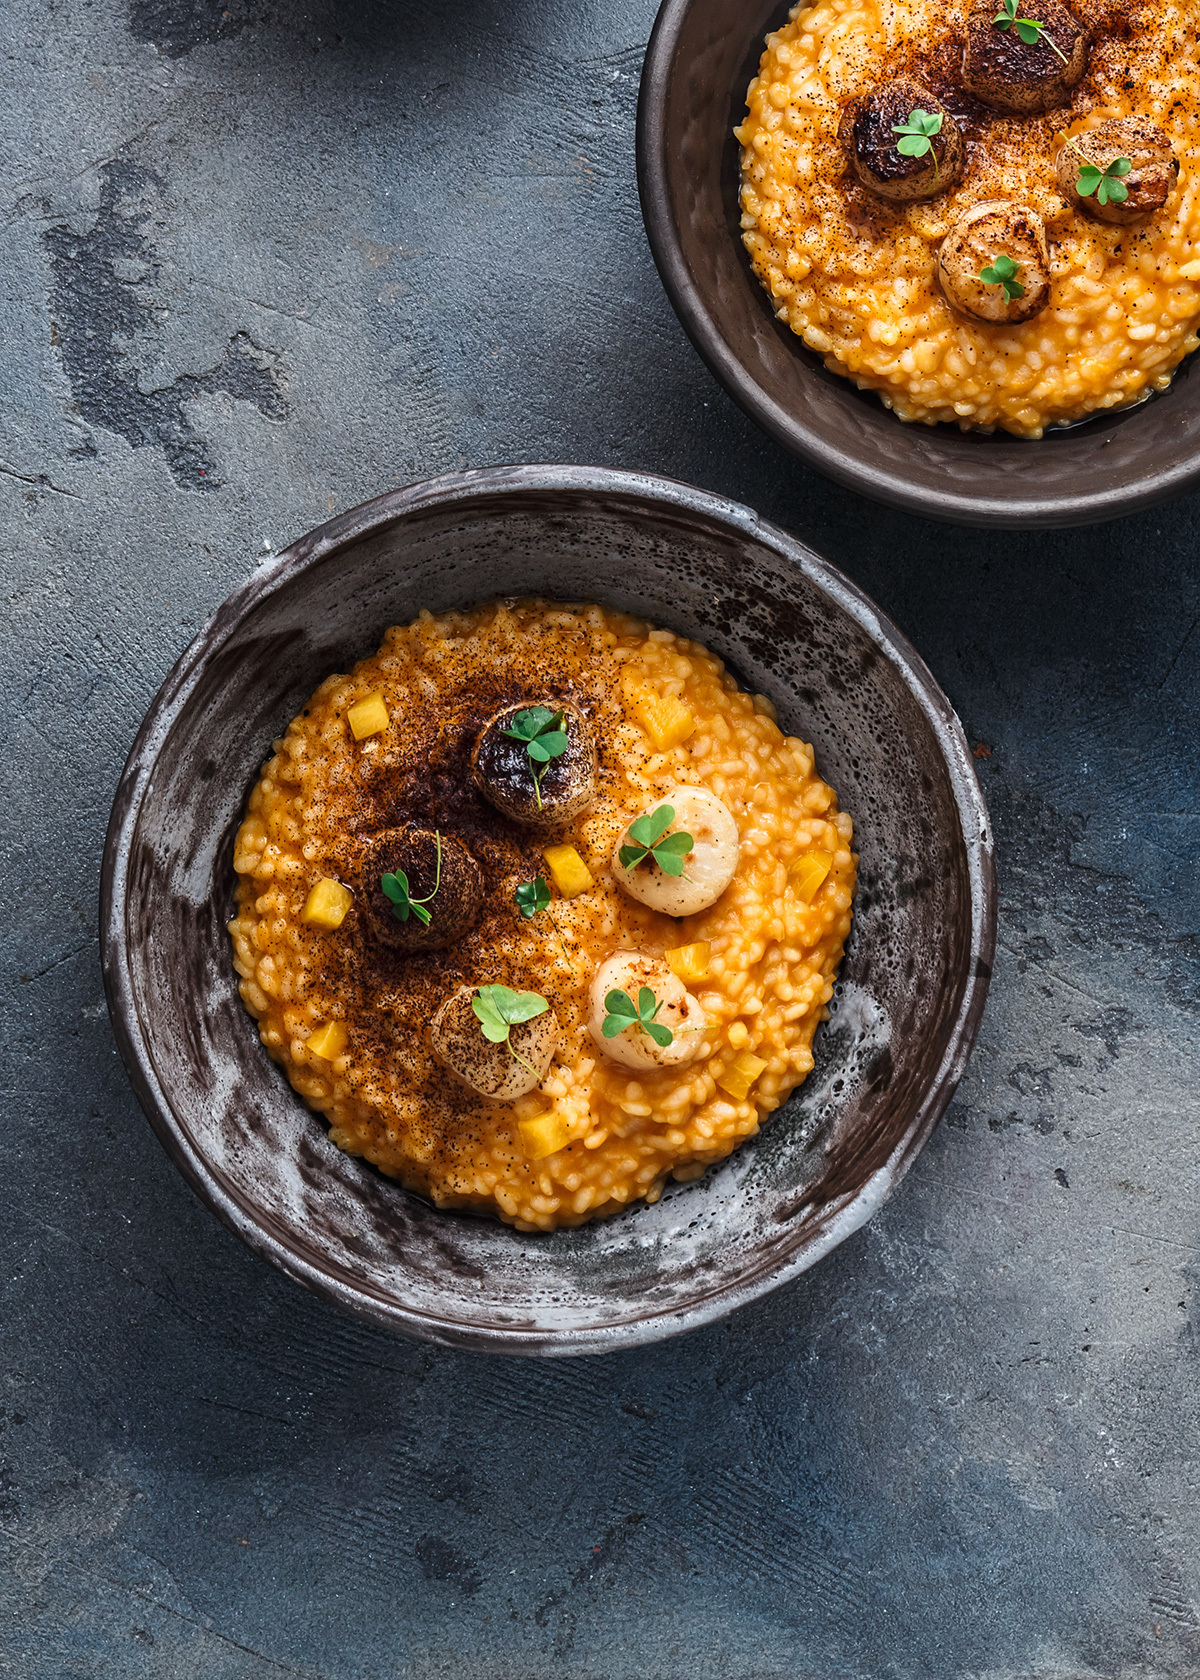 Locaal Saffron-infused barley risotto, wild mushrooms and caramelized scallops